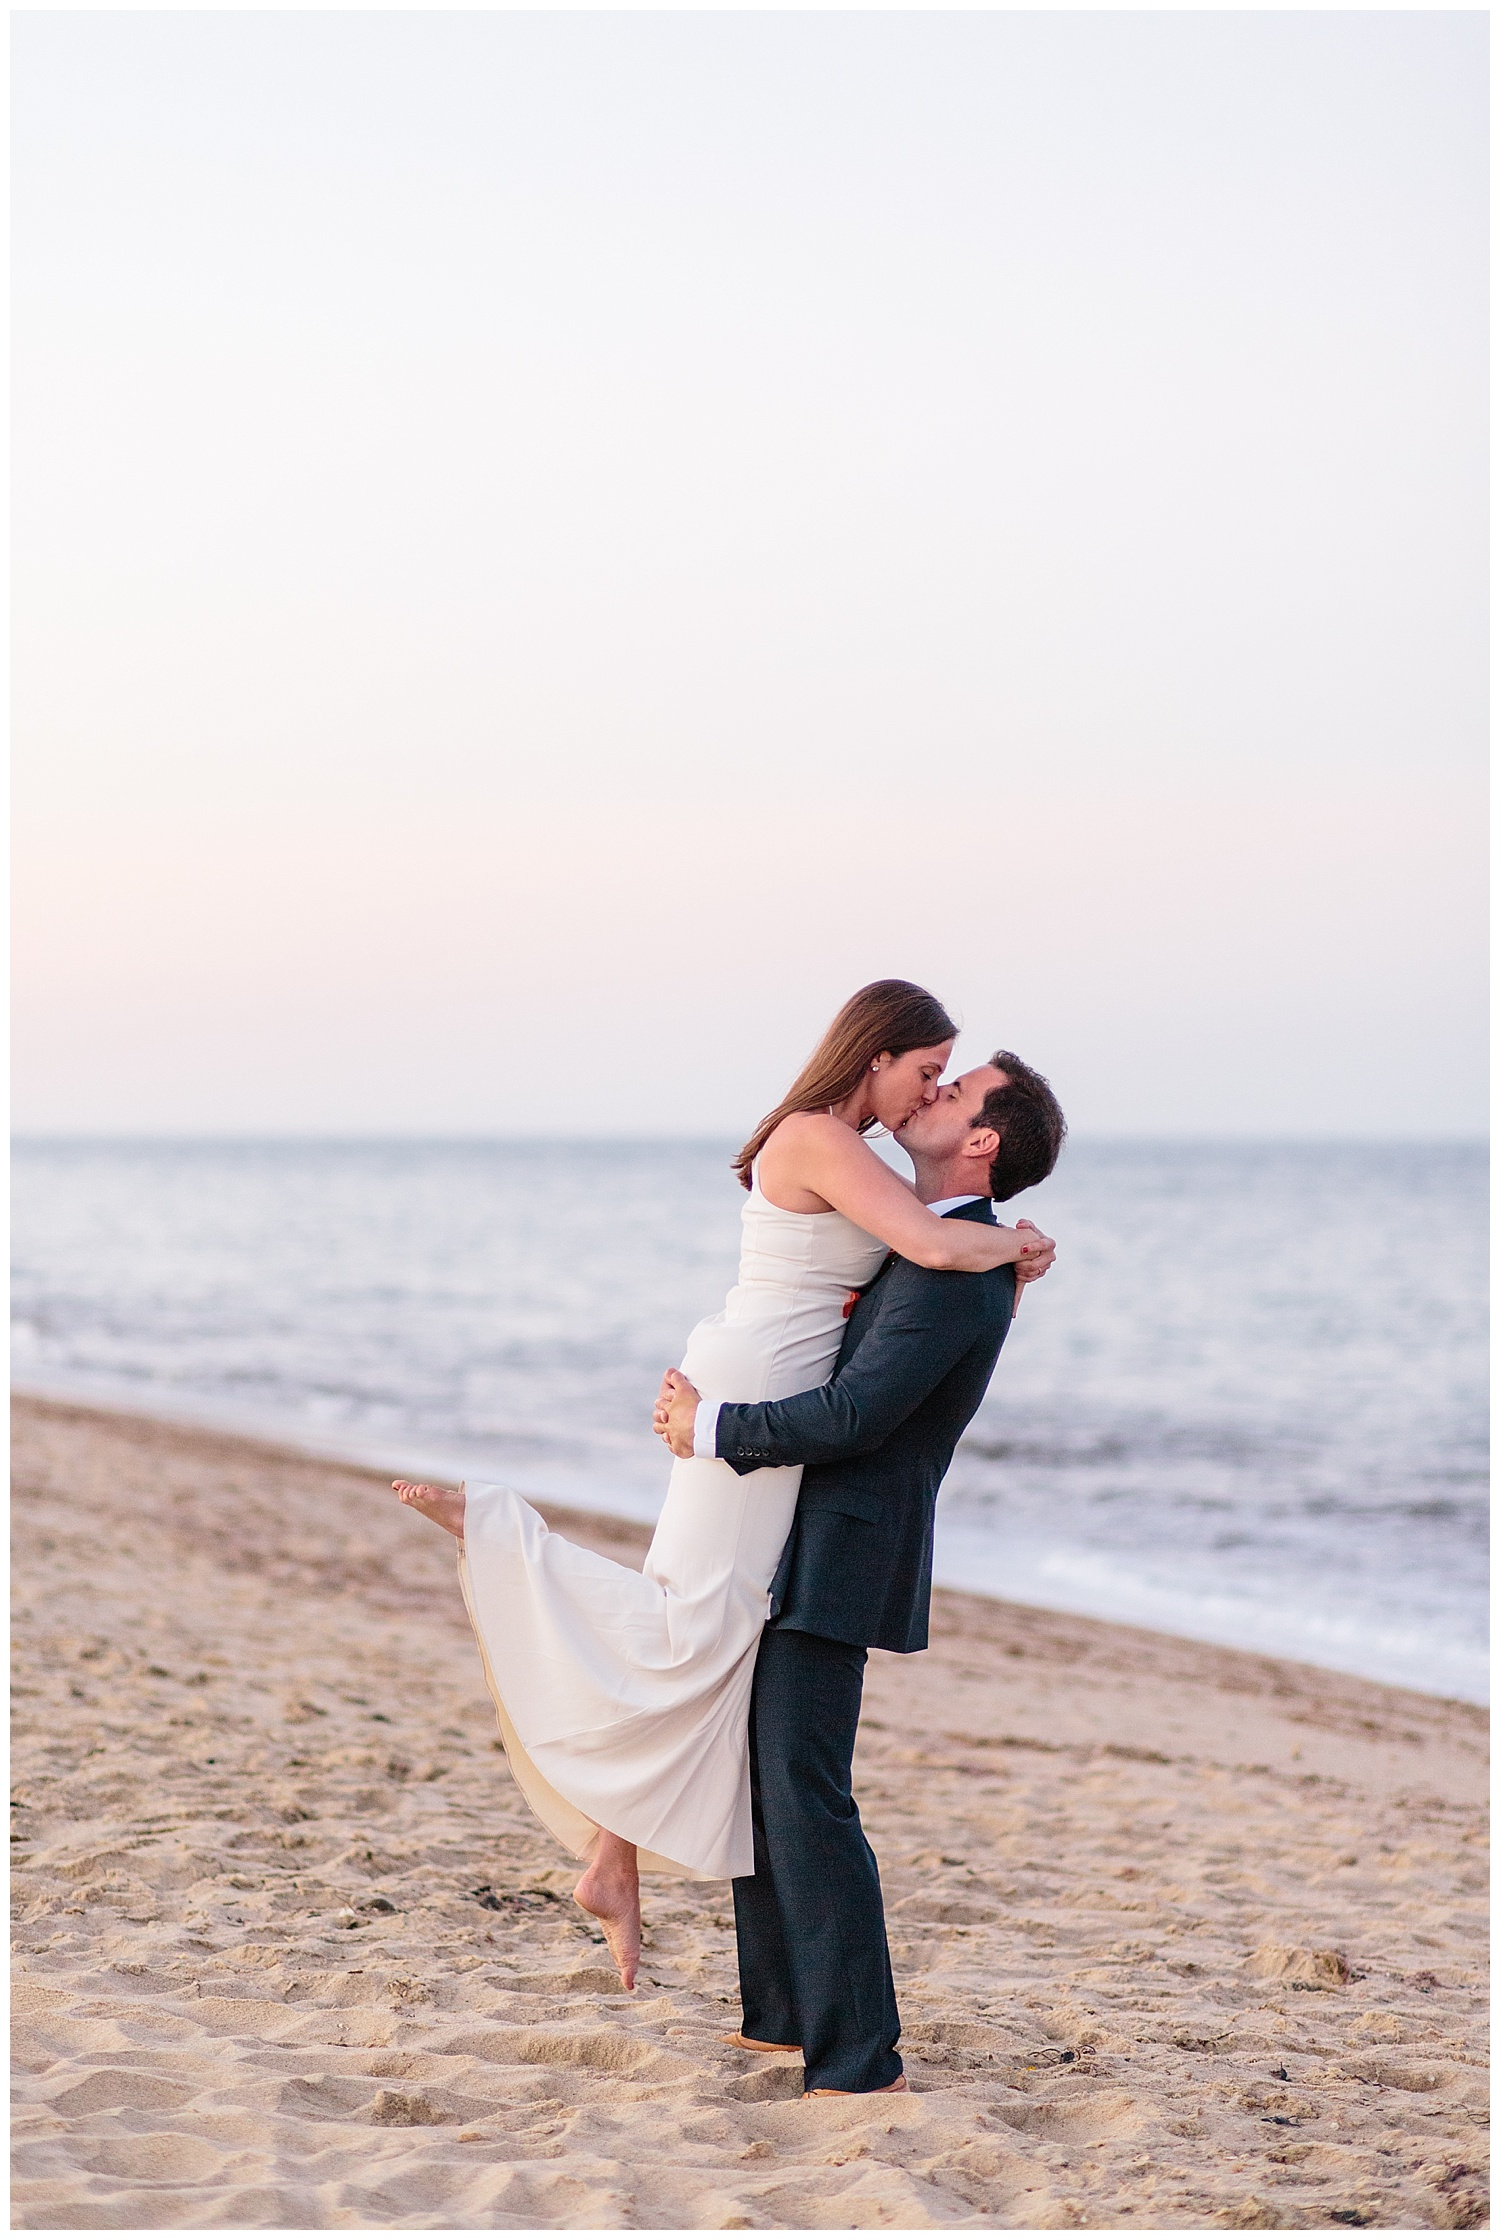 emily-belson-photography-nantucket-elopement-62.jpg